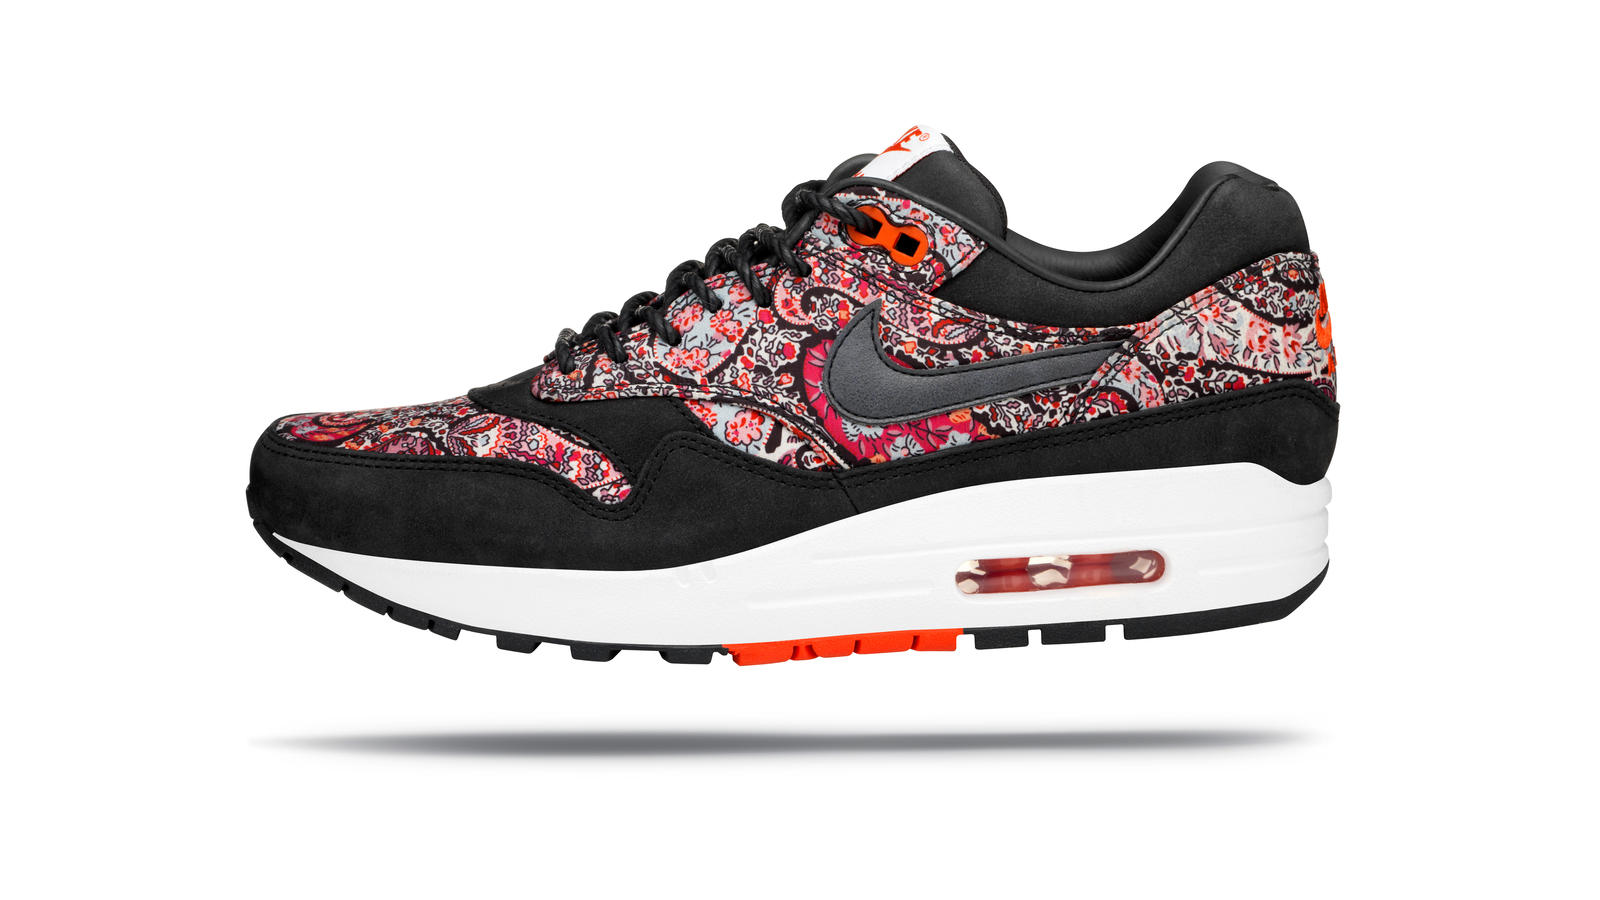 The Nike x Liberty Collection Nike News